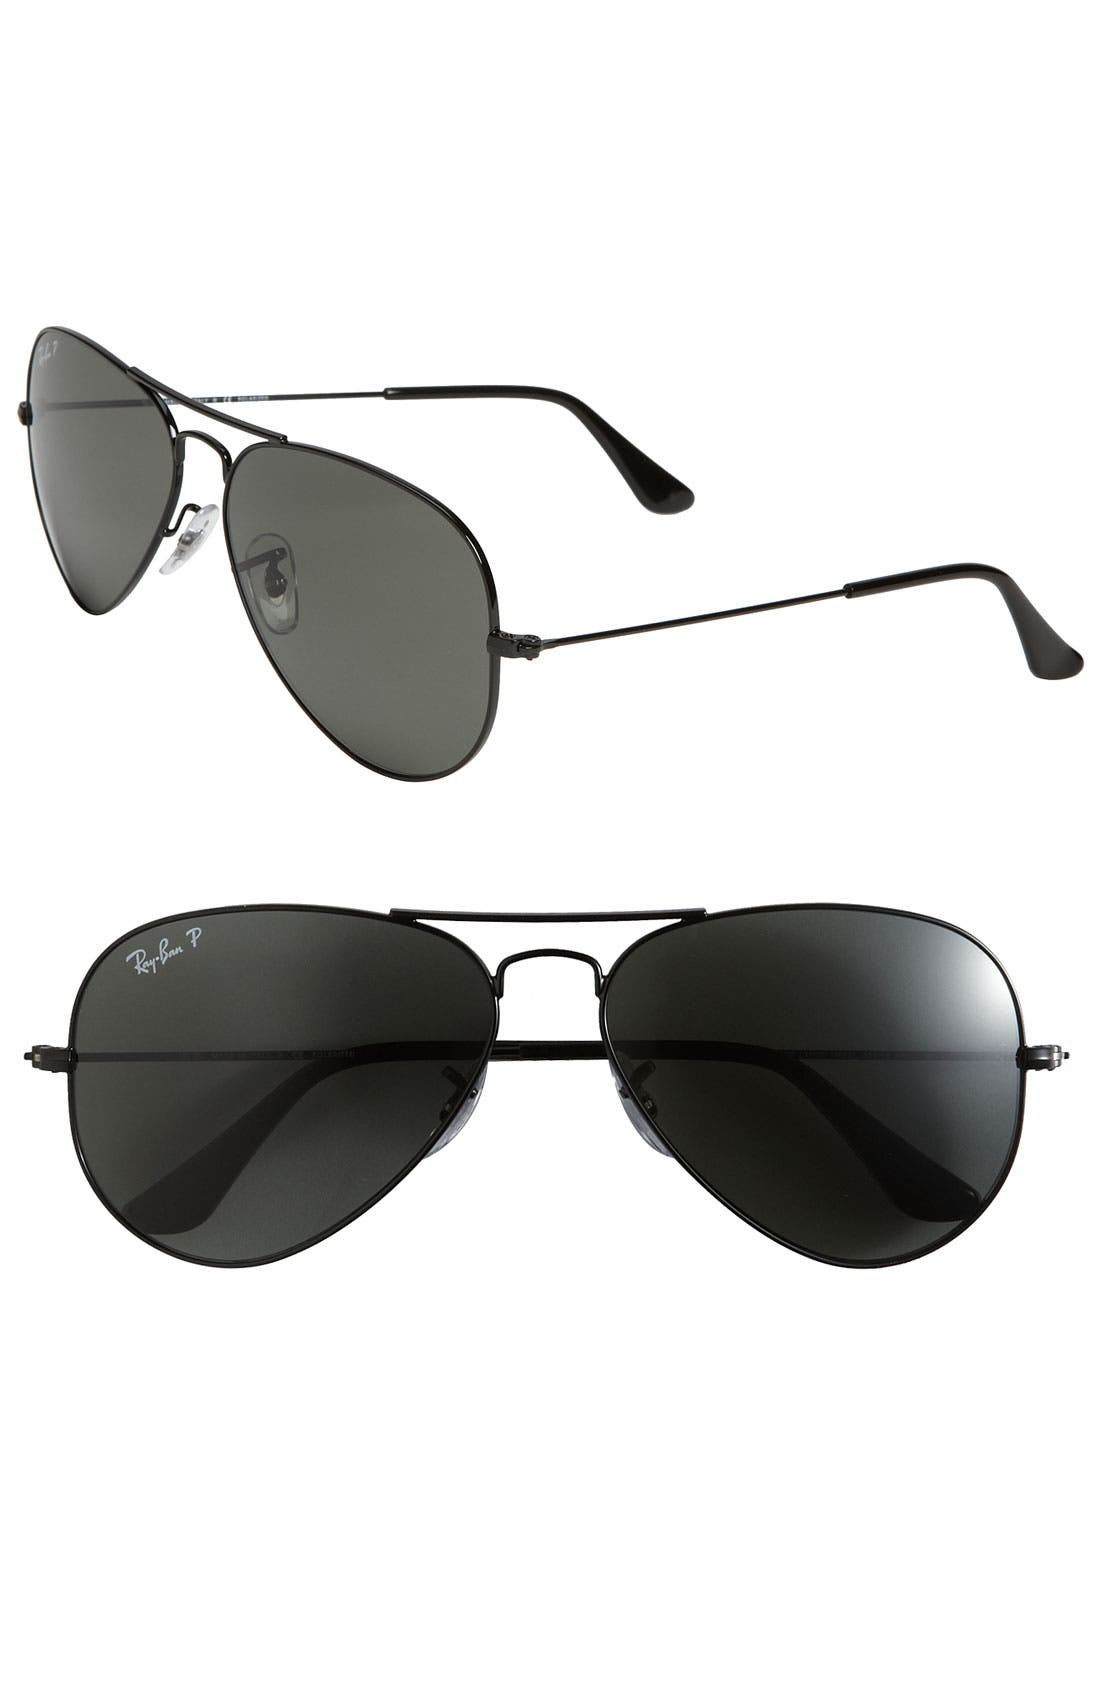 RAY-BAN Polarized Original Aviator 58mm Sunglasses